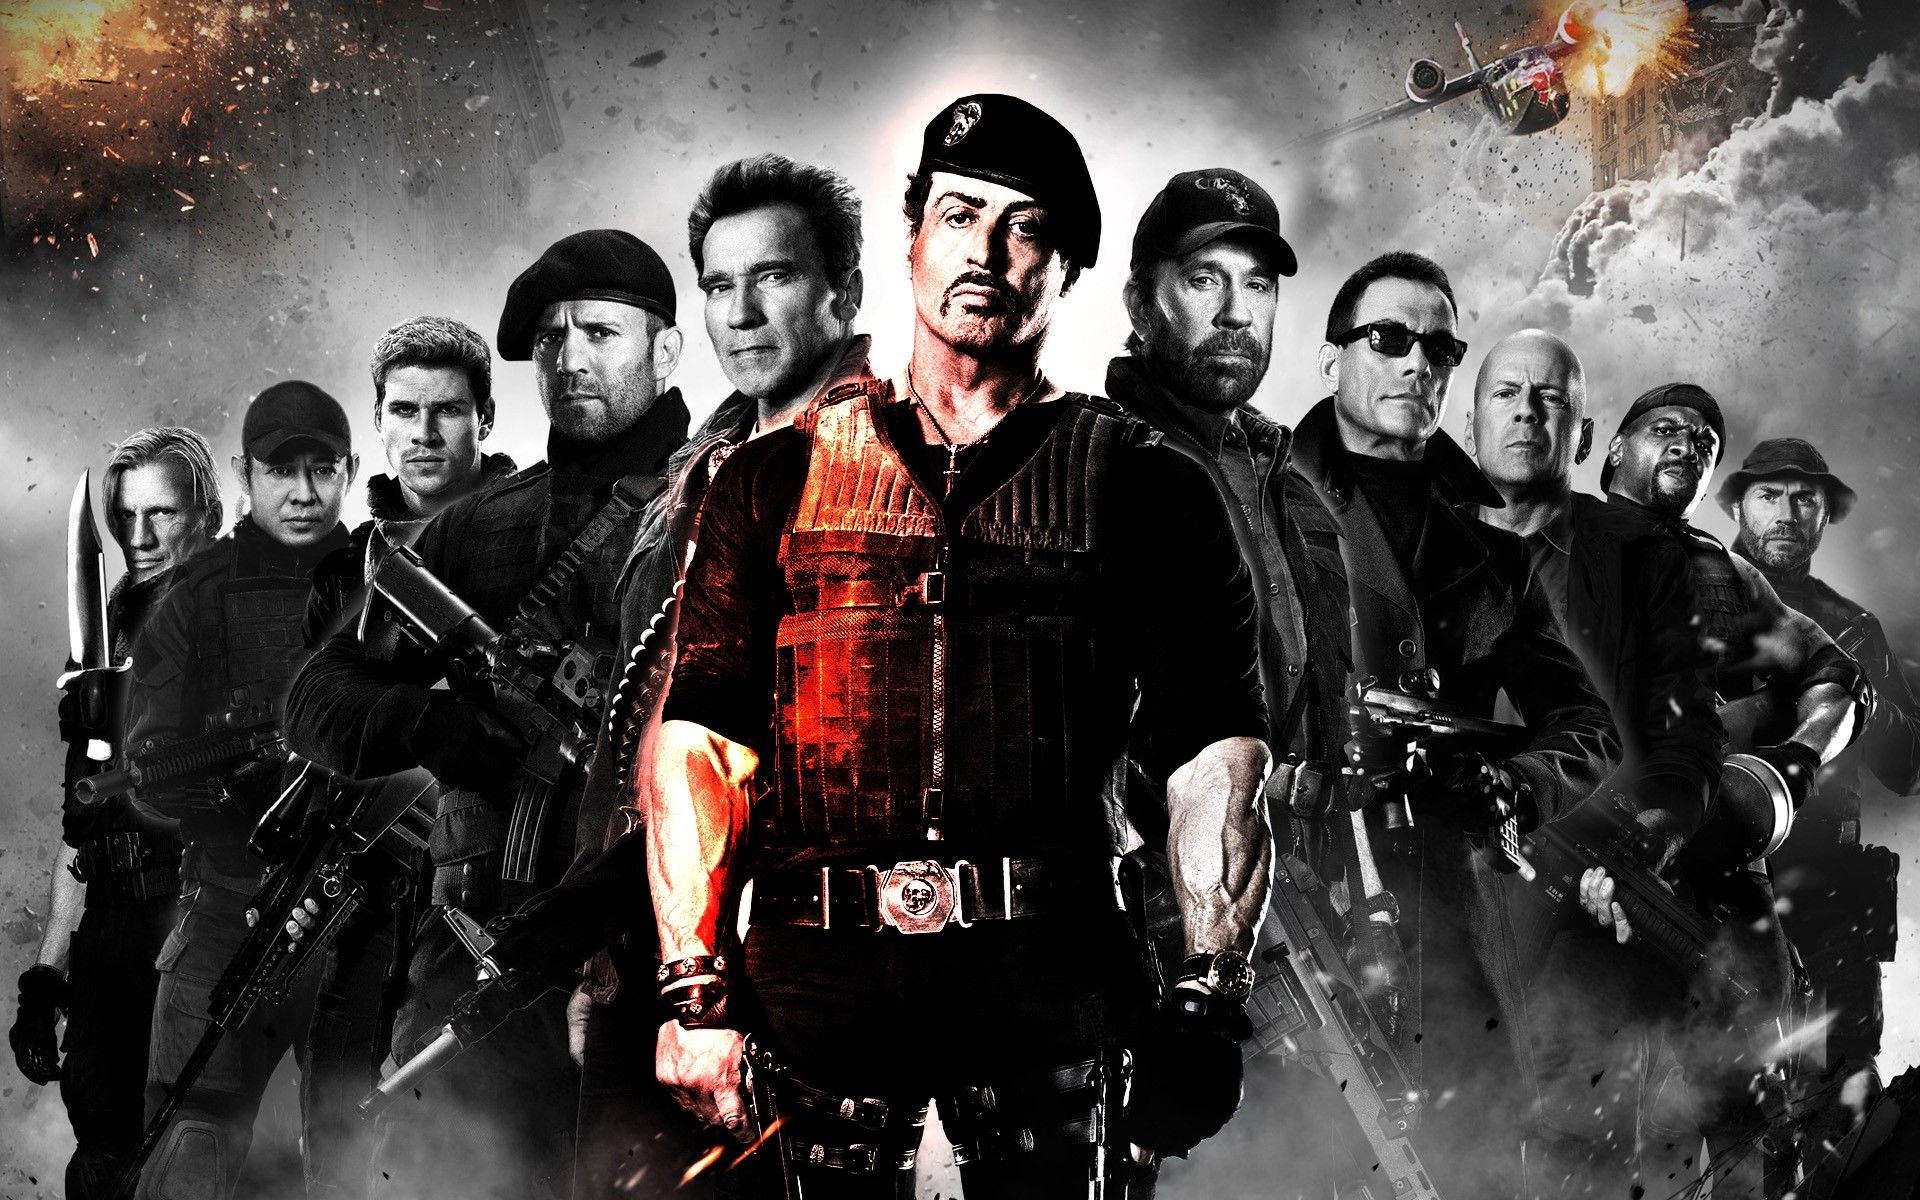 the expendables 3 wallpapers hd 1 http://www.wallpapersu/the